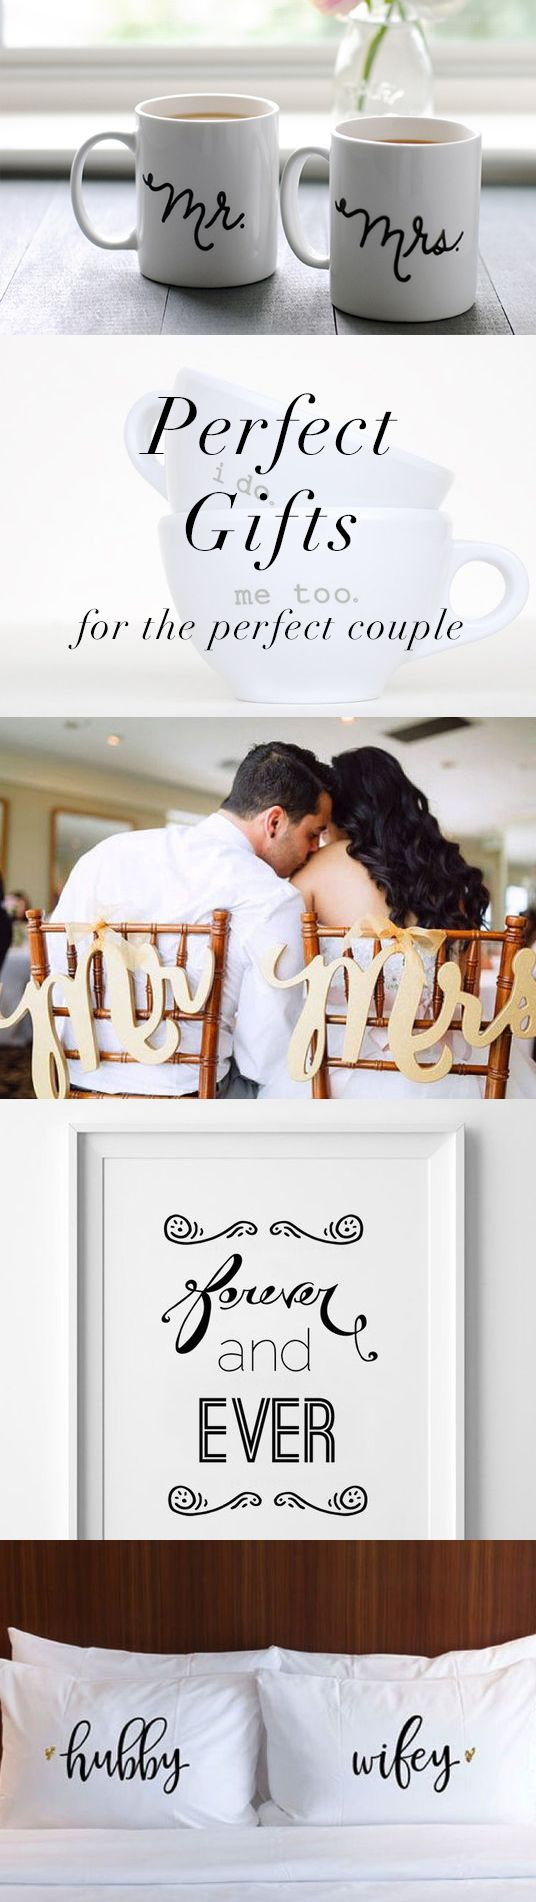 Wedding Gift Ideas that Will Make You Want to Get Married